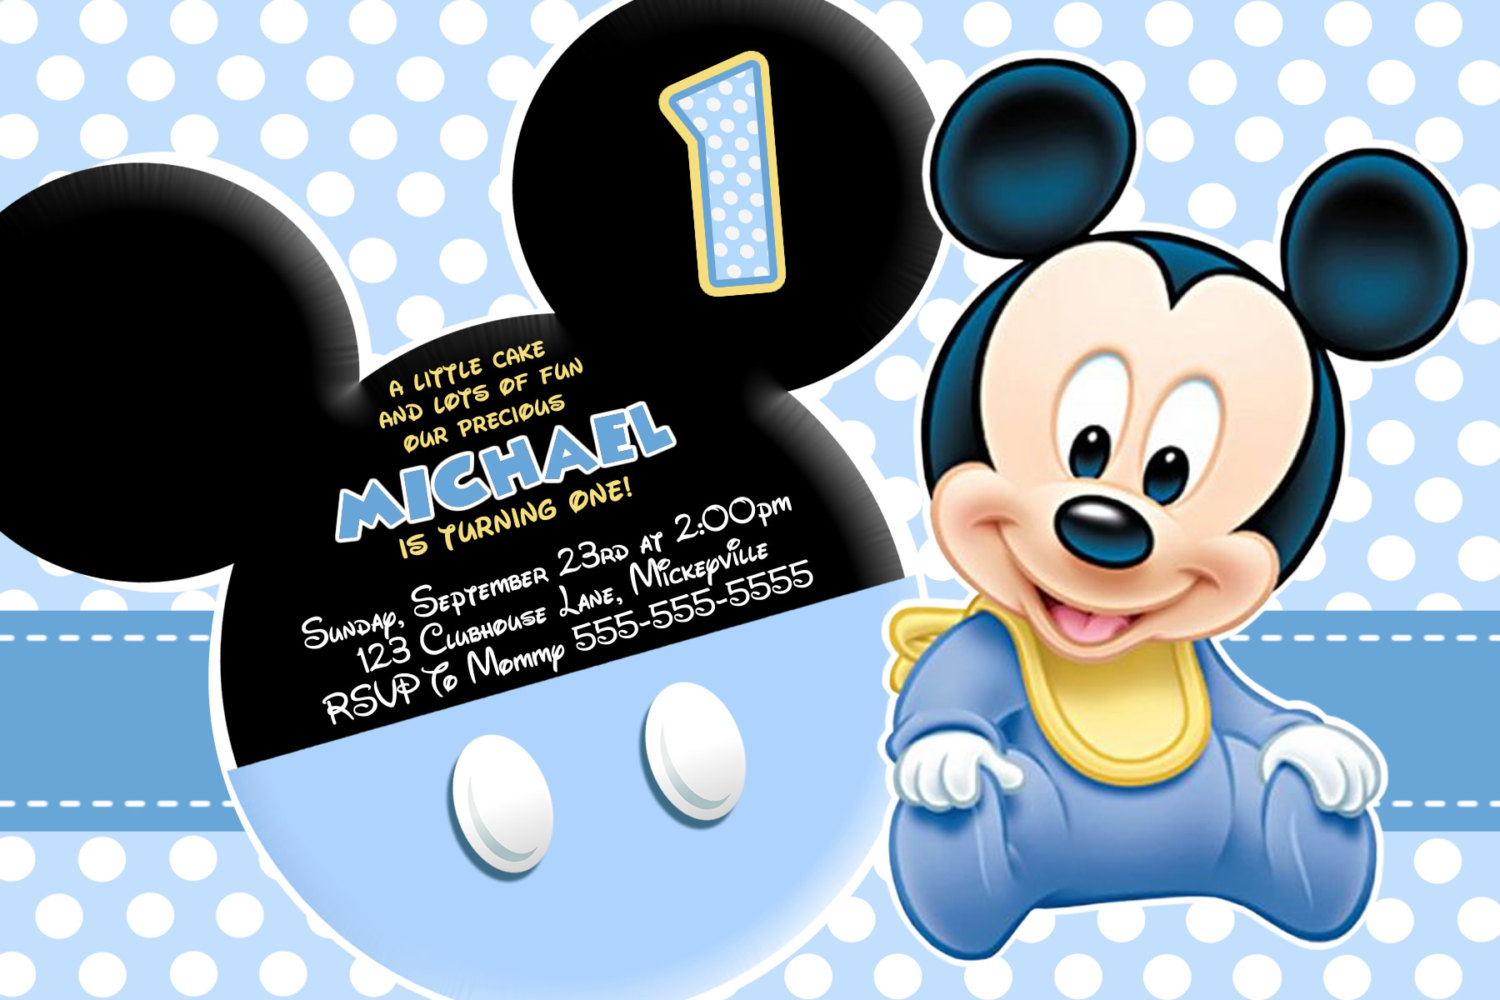 Blue Safari Baby Shower Invitations is nice invitation layout